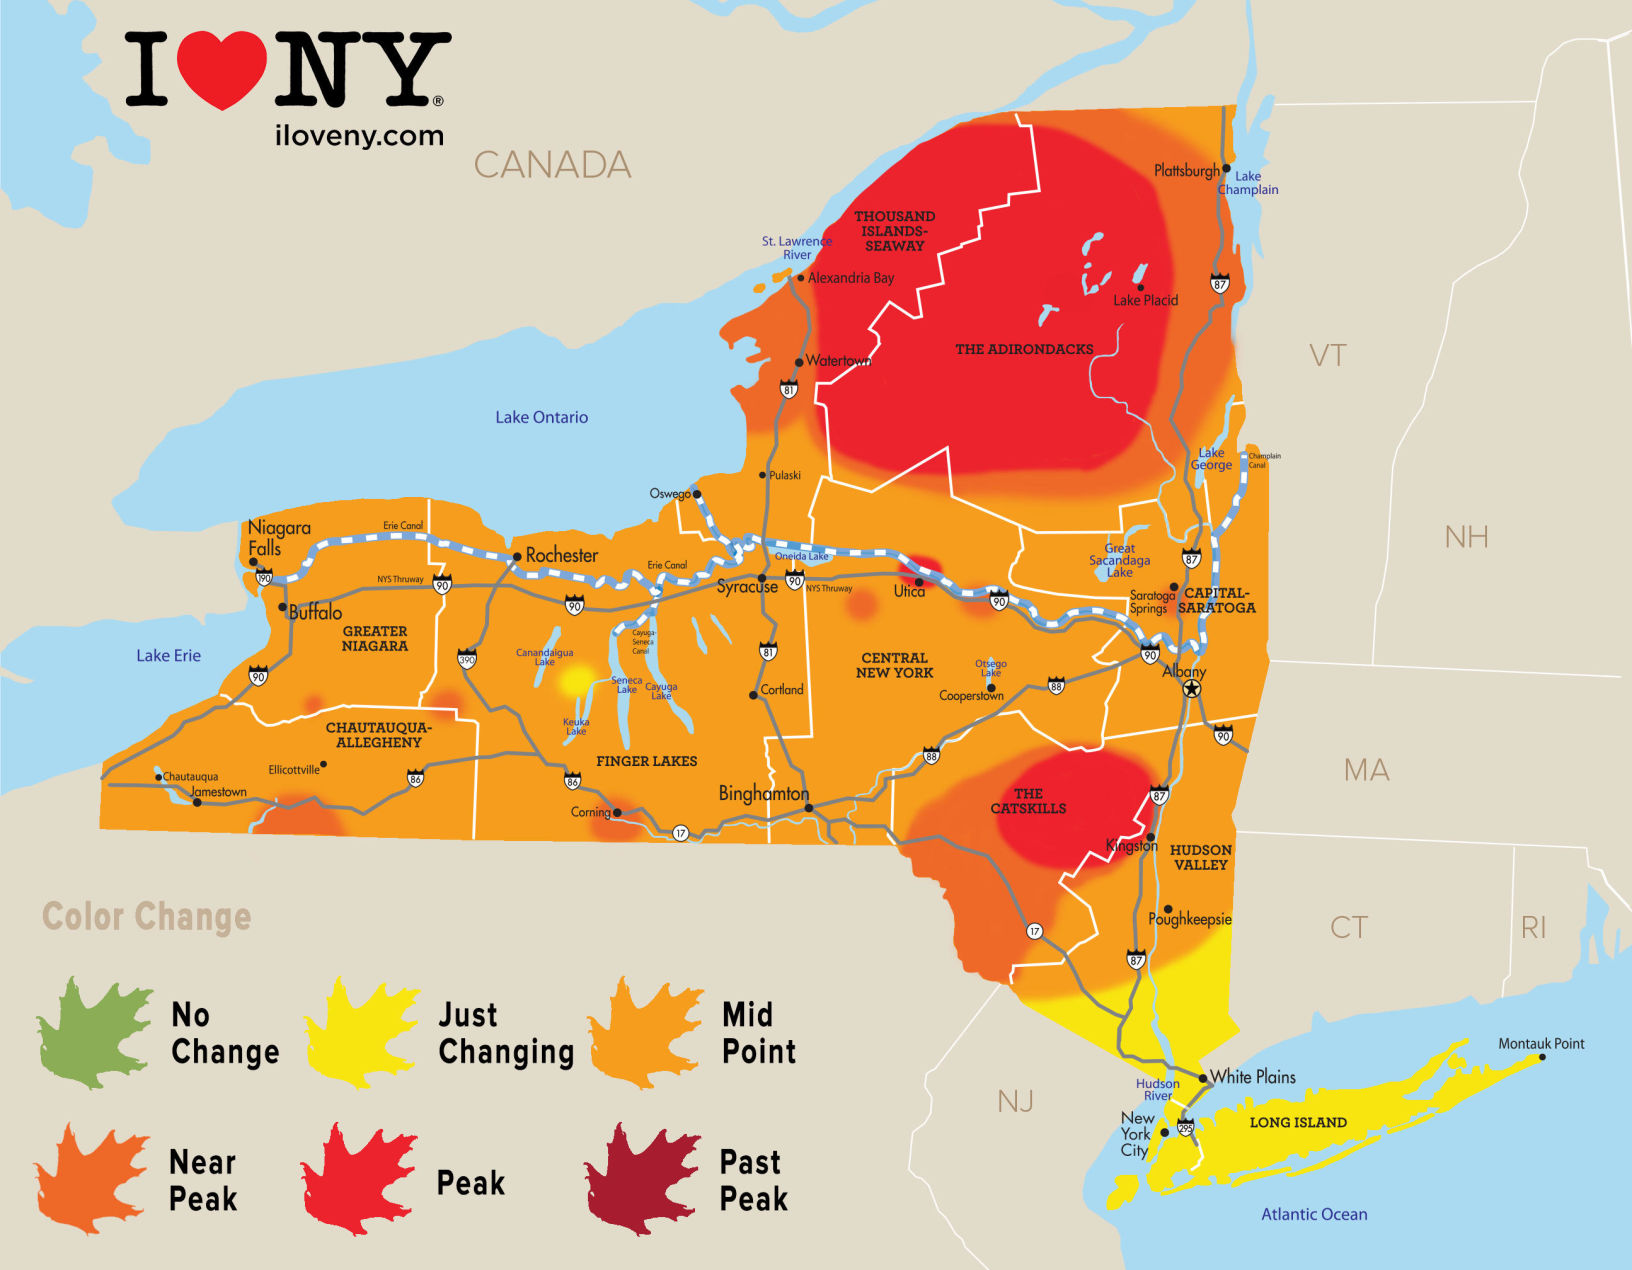 New York state fall foliage report for week of Oct. 10